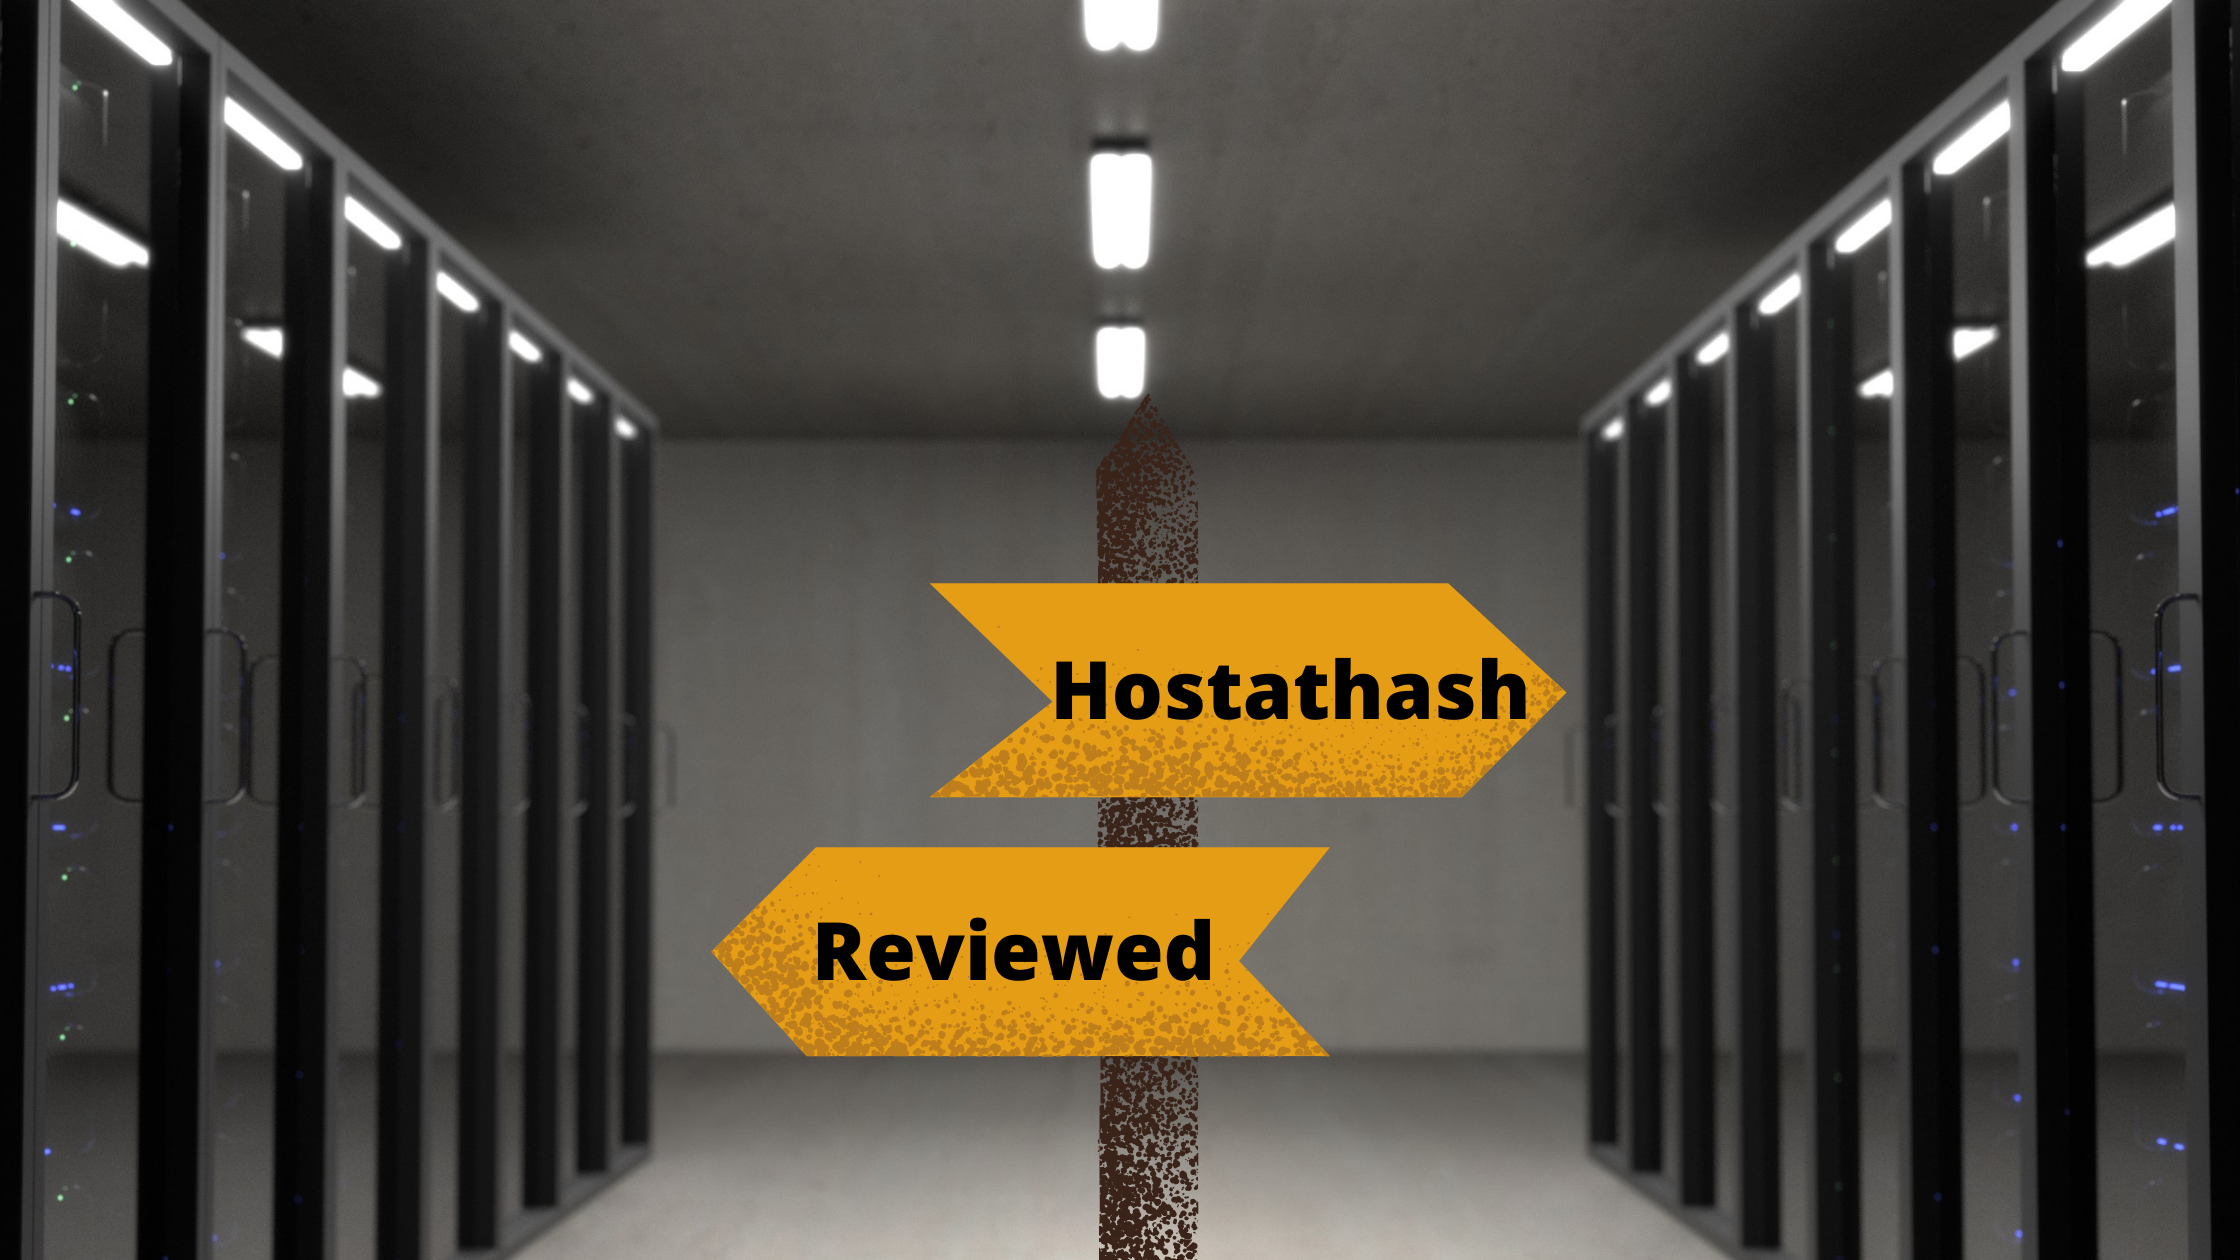 Hostathash reviewed